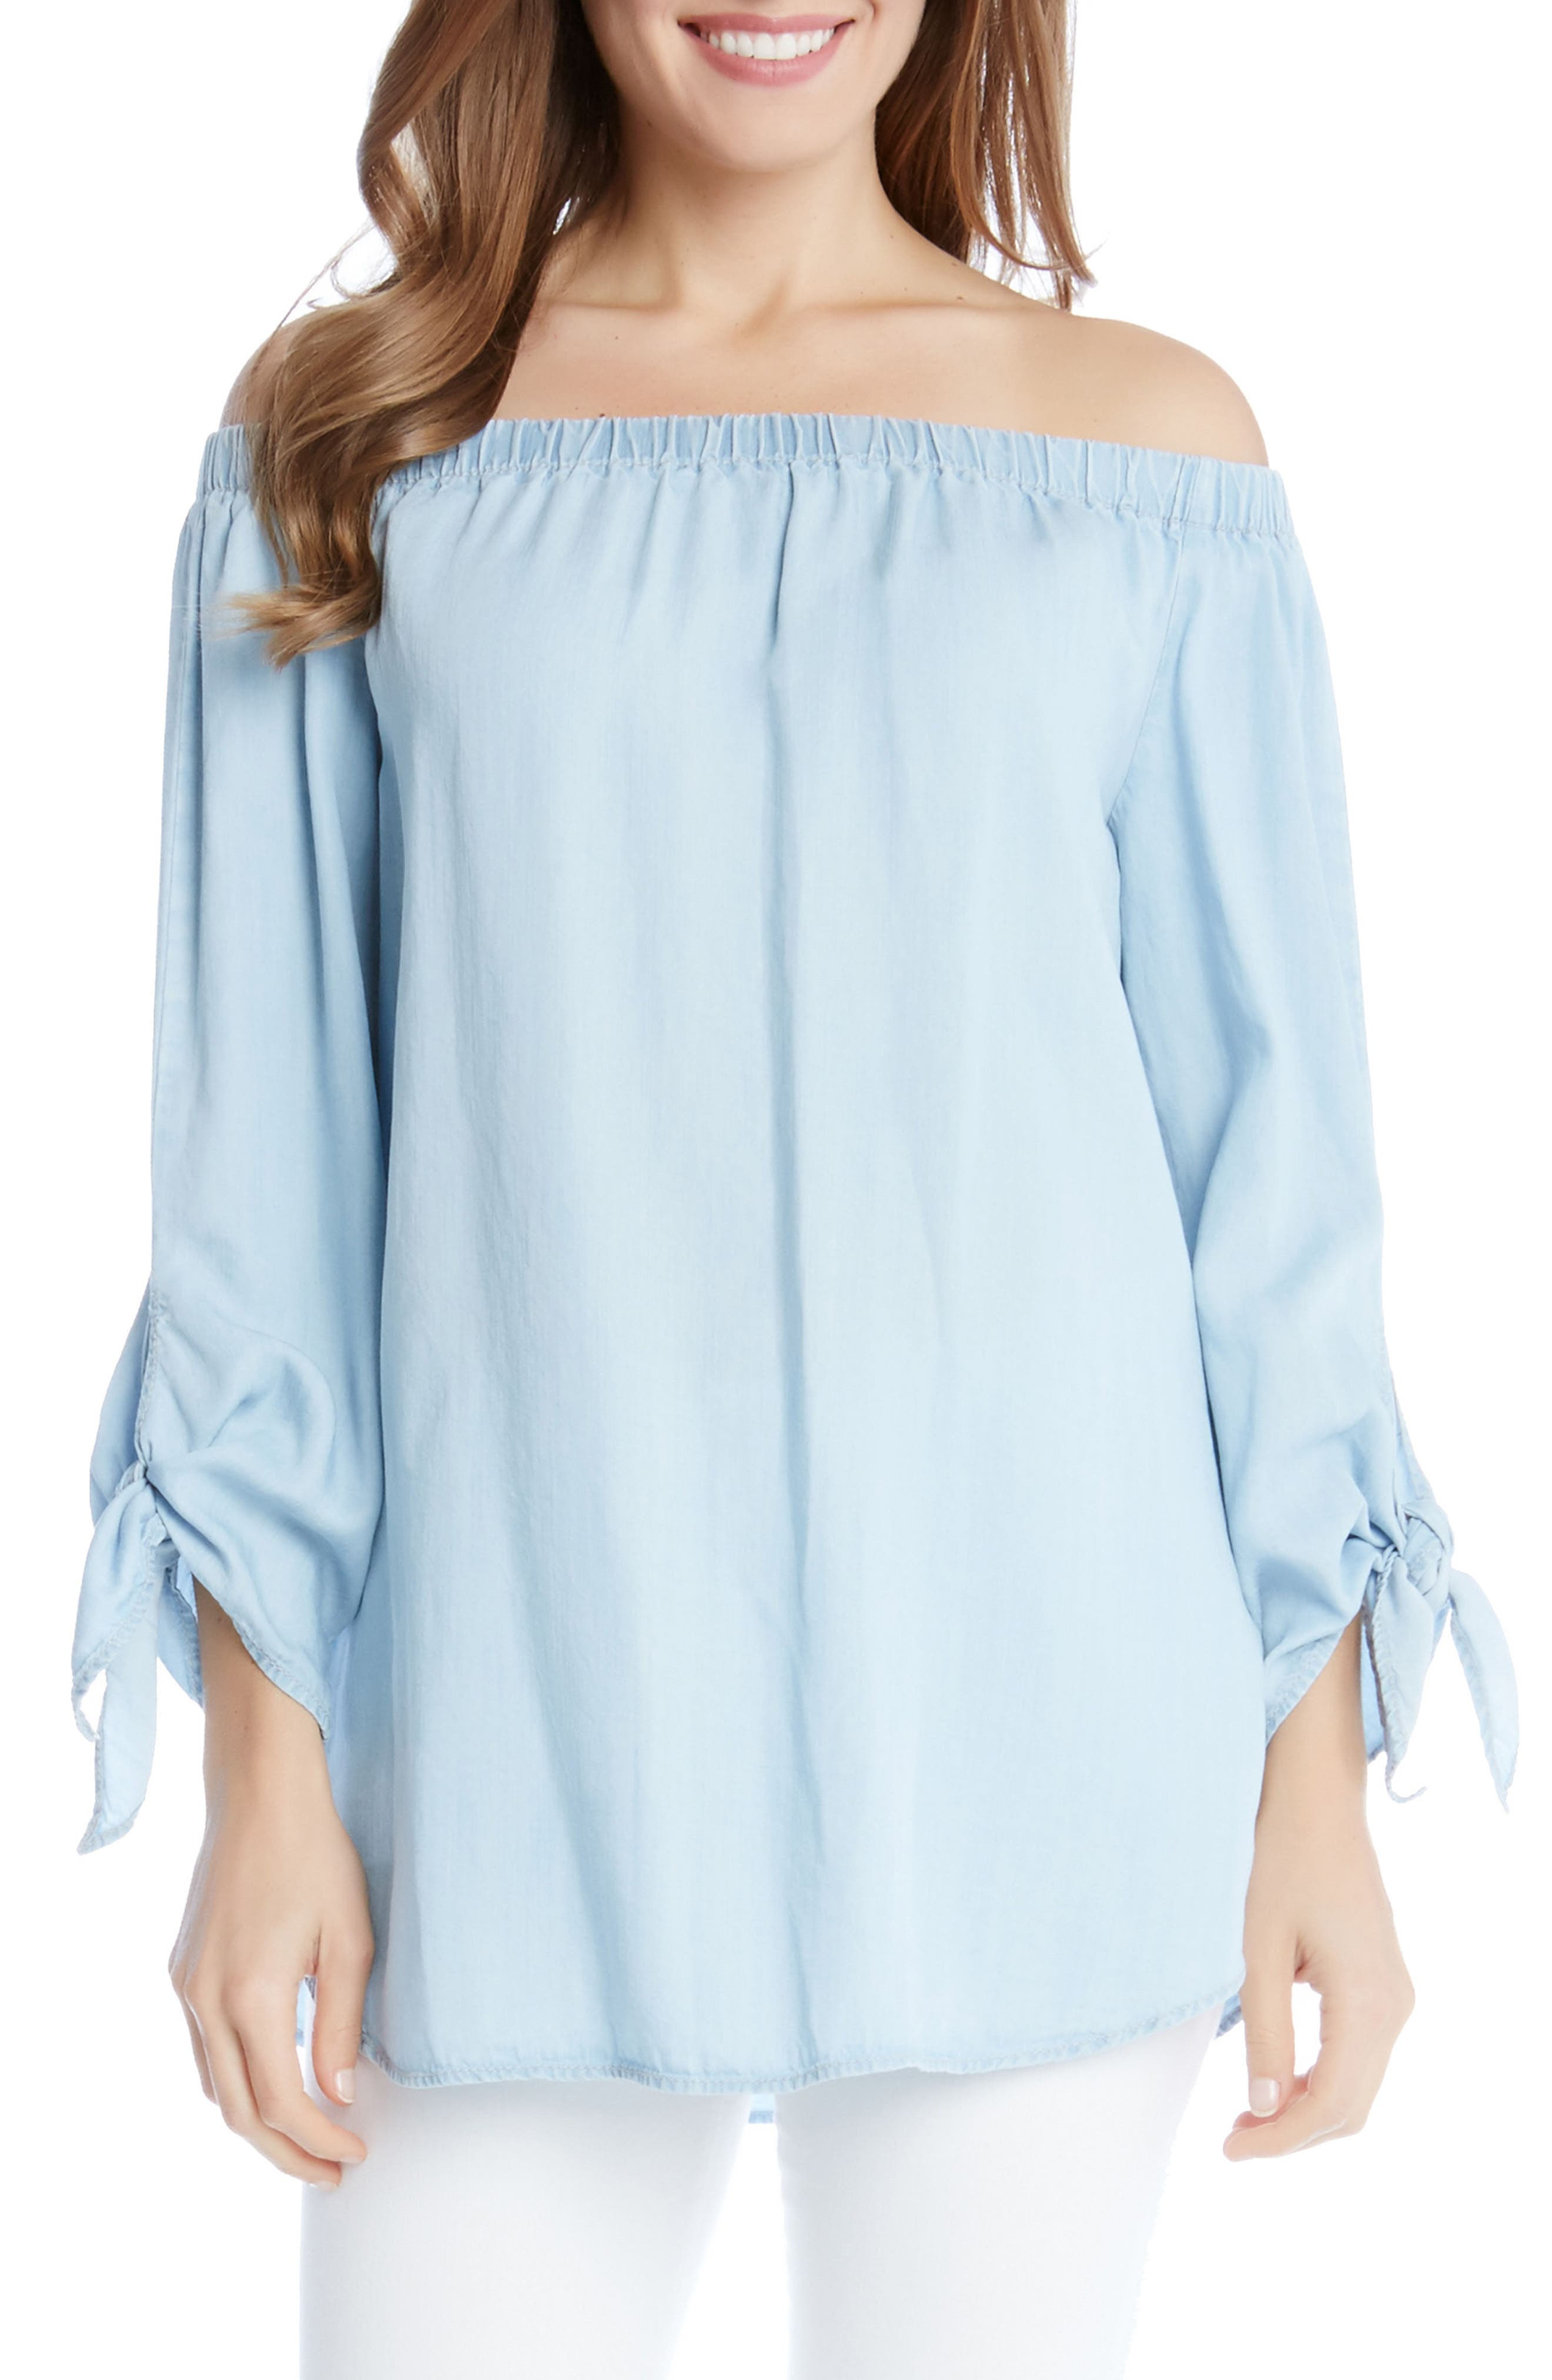 Alternate Image 1 Selected - Karen Kane Tie Sleeve Off the Shoulder Chambray Top